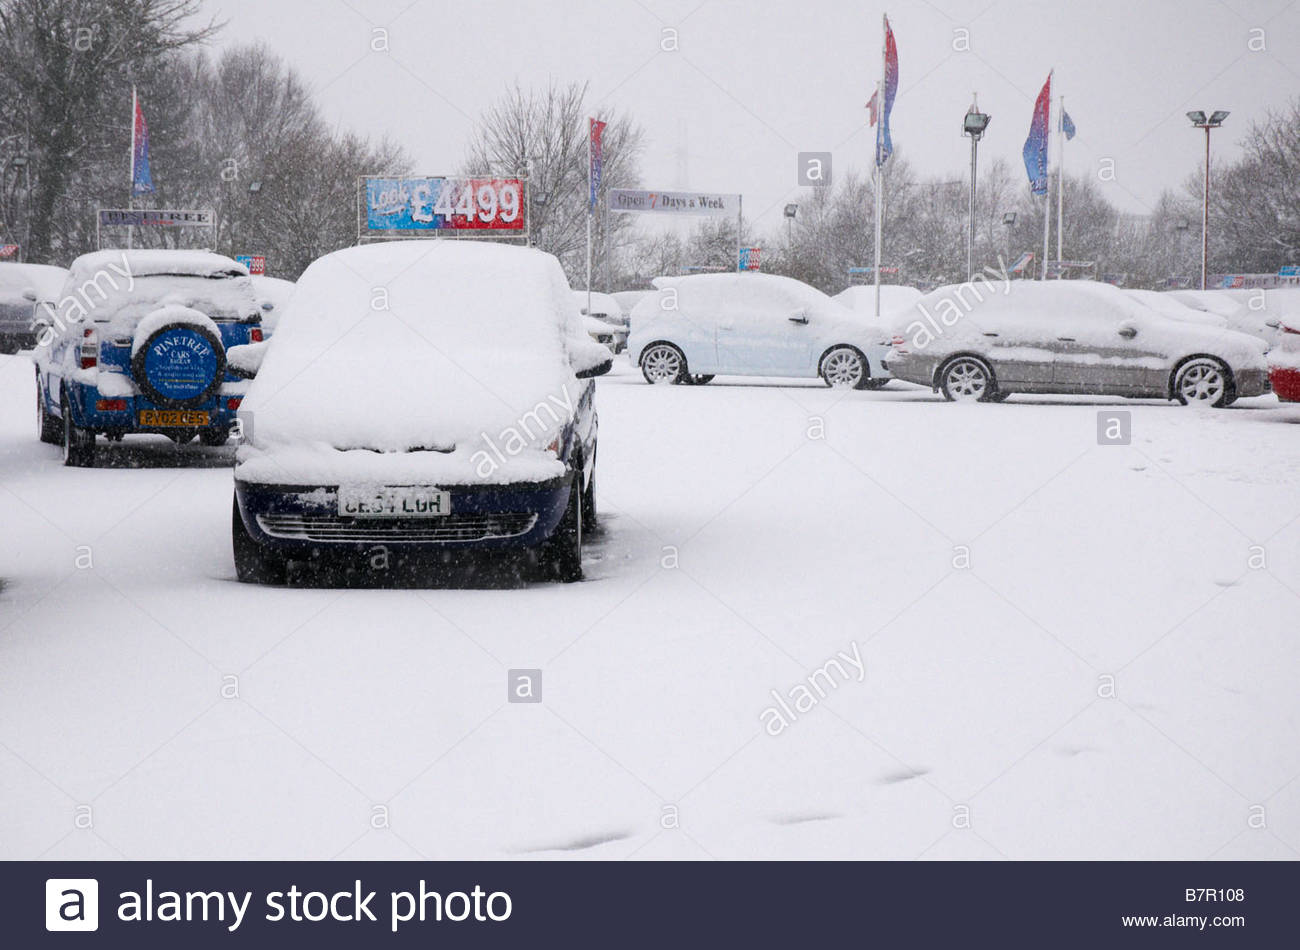 Rows of used cars covered in snow for sale in a secondhand car dealership lot - Stock Image